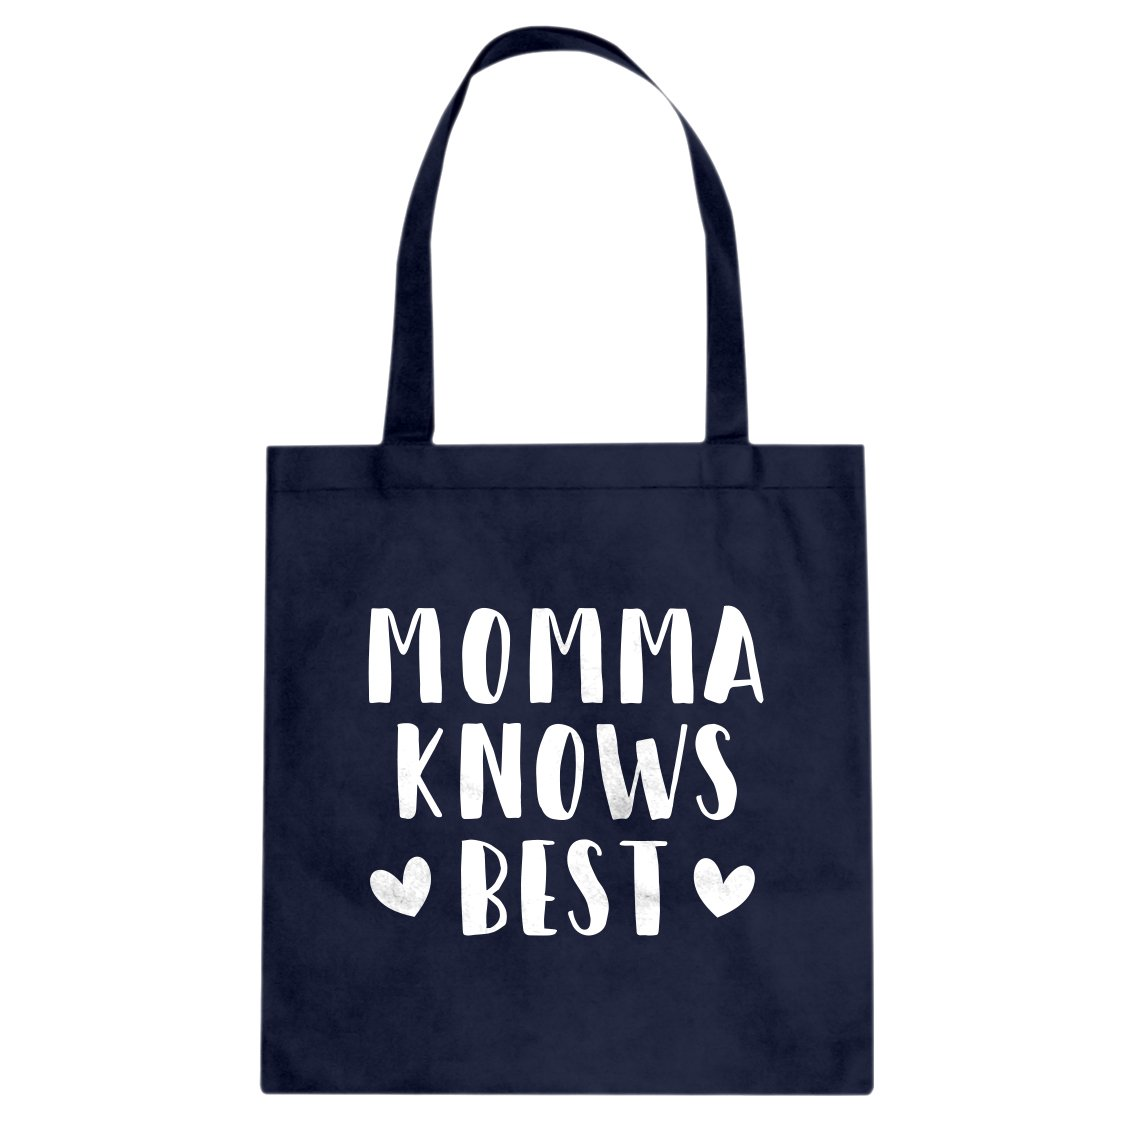 Indica Plateau Momma Knows Bestキャンバストートバッグ L ネイビーブルー B074HSKG6H